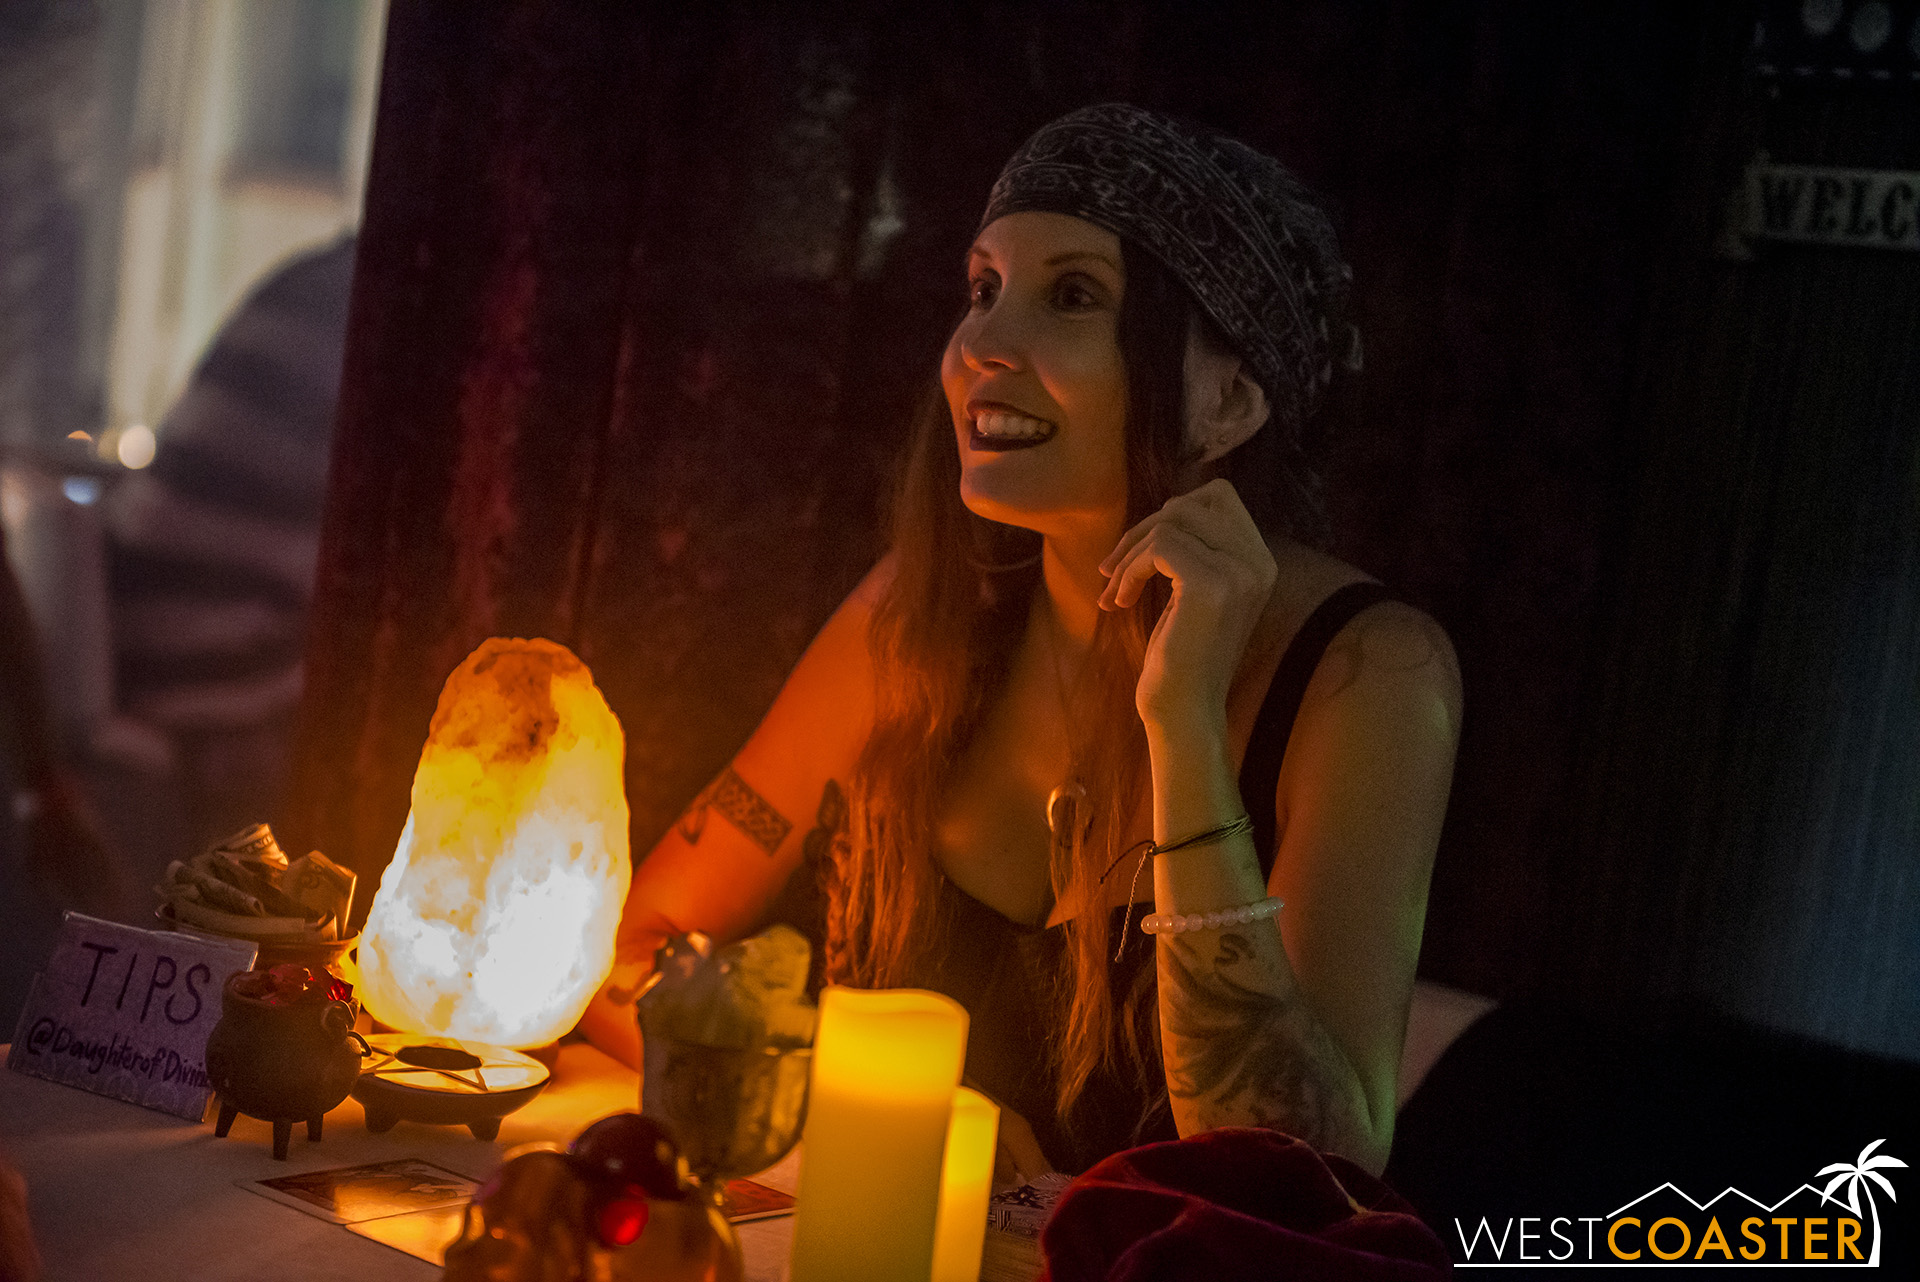 A tarot card reader works at the Spirit Lounge.  There's no upcharge to see her, other than tips.